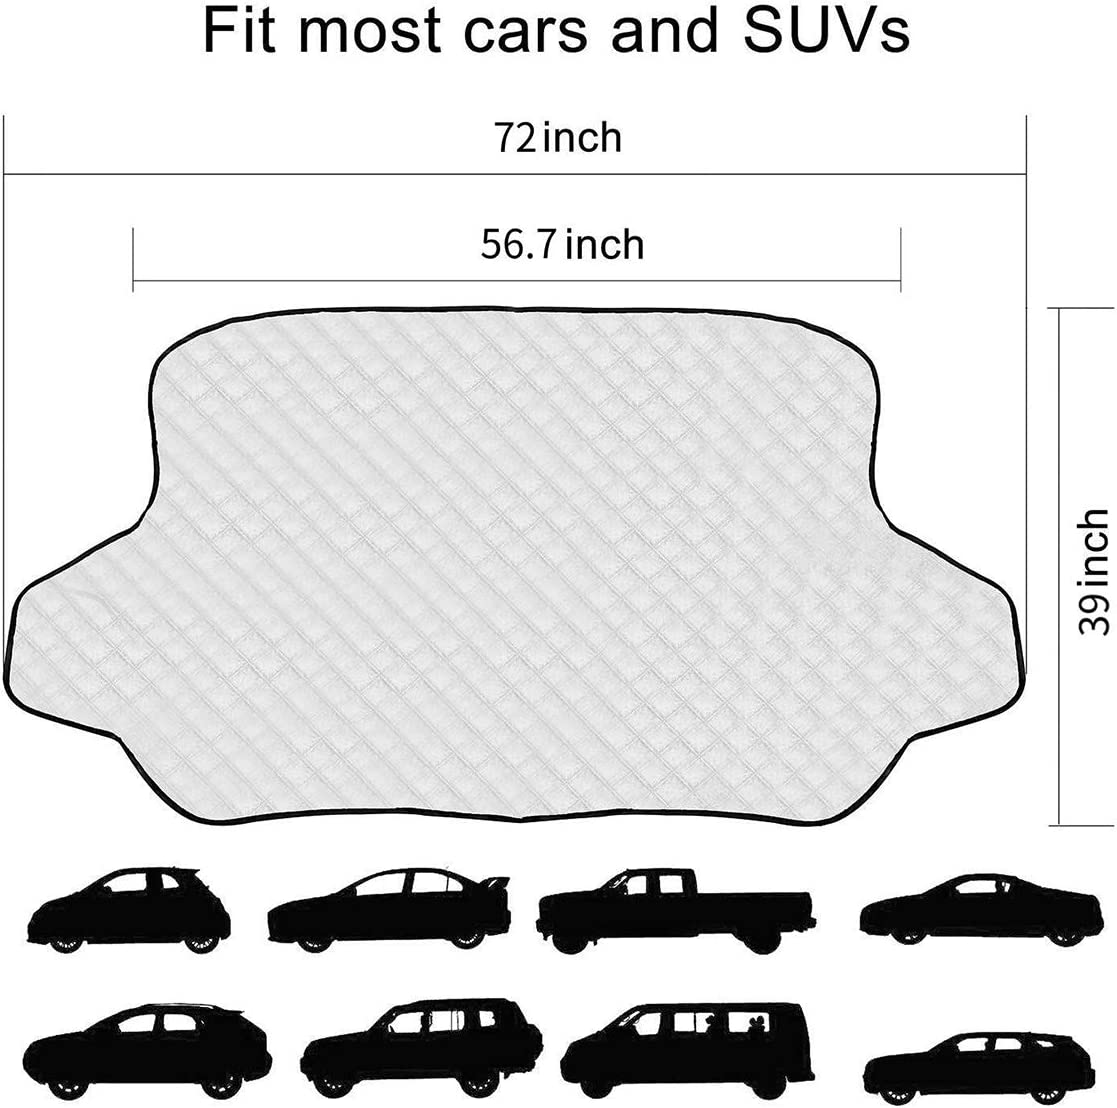 58 X40 EZNILE Car Windshield Snow Cover Winter Frost Guard Windshield Snow Ice Sun Defense Cover with 4 Layers Protection Fits for Most Cars and SUV